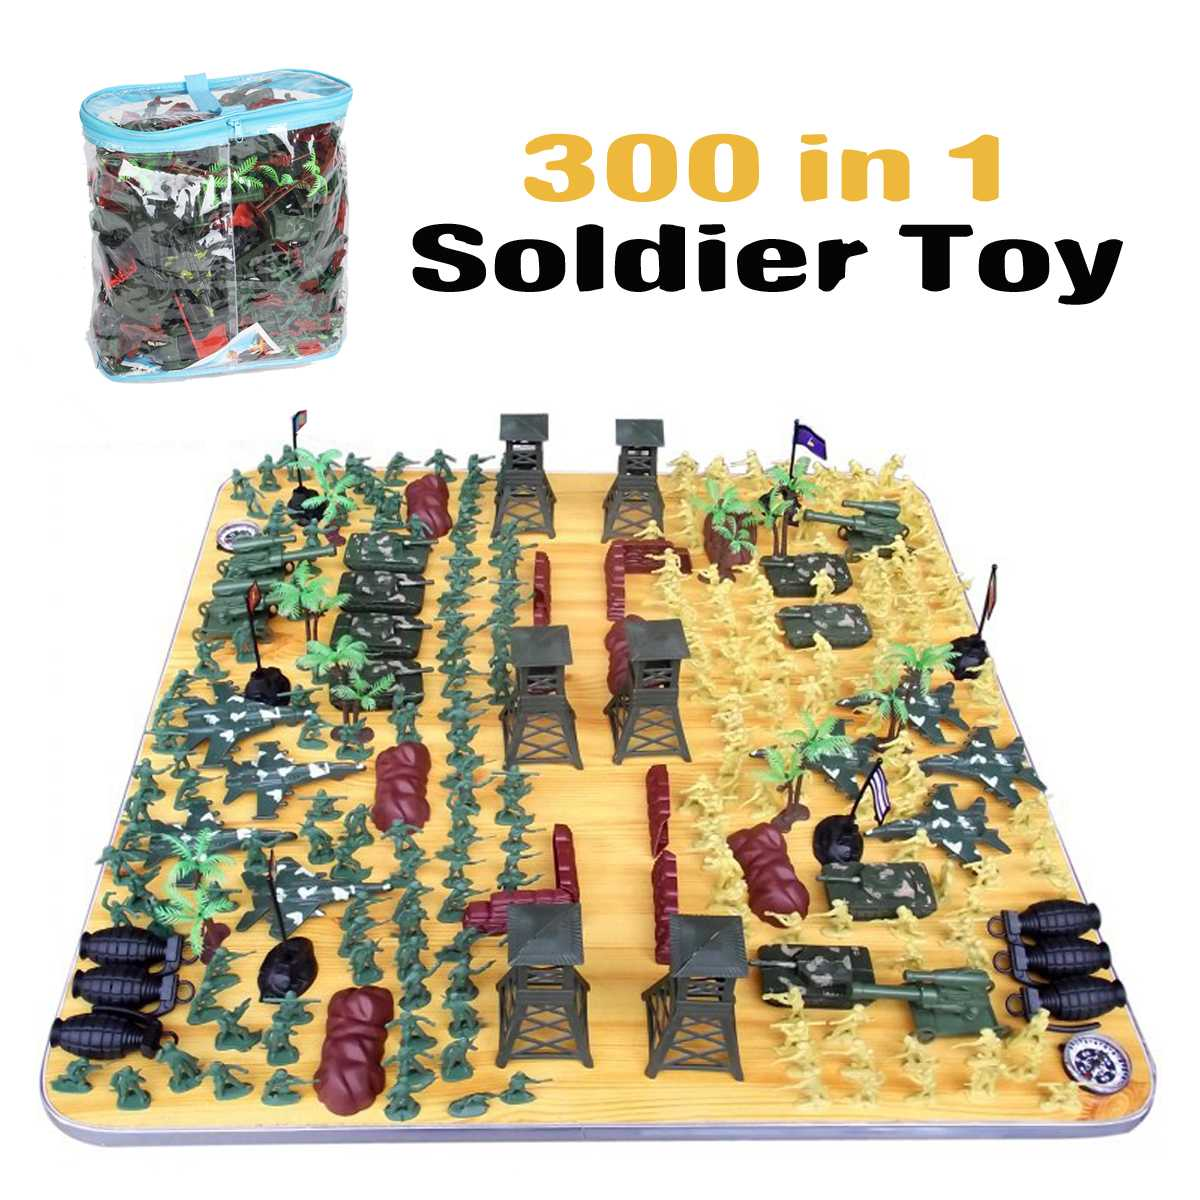 Soldier Model sandbox game Military Plastic Toy Soldier Army Men Figures & Accessories Playset Kit Gift Model Toy For Kids BoysSoldier Model sandbox game Military Plastic Toy Soldier Army Men Figures & Accessories Playset Kit Gift Model Toy For Kids Boys